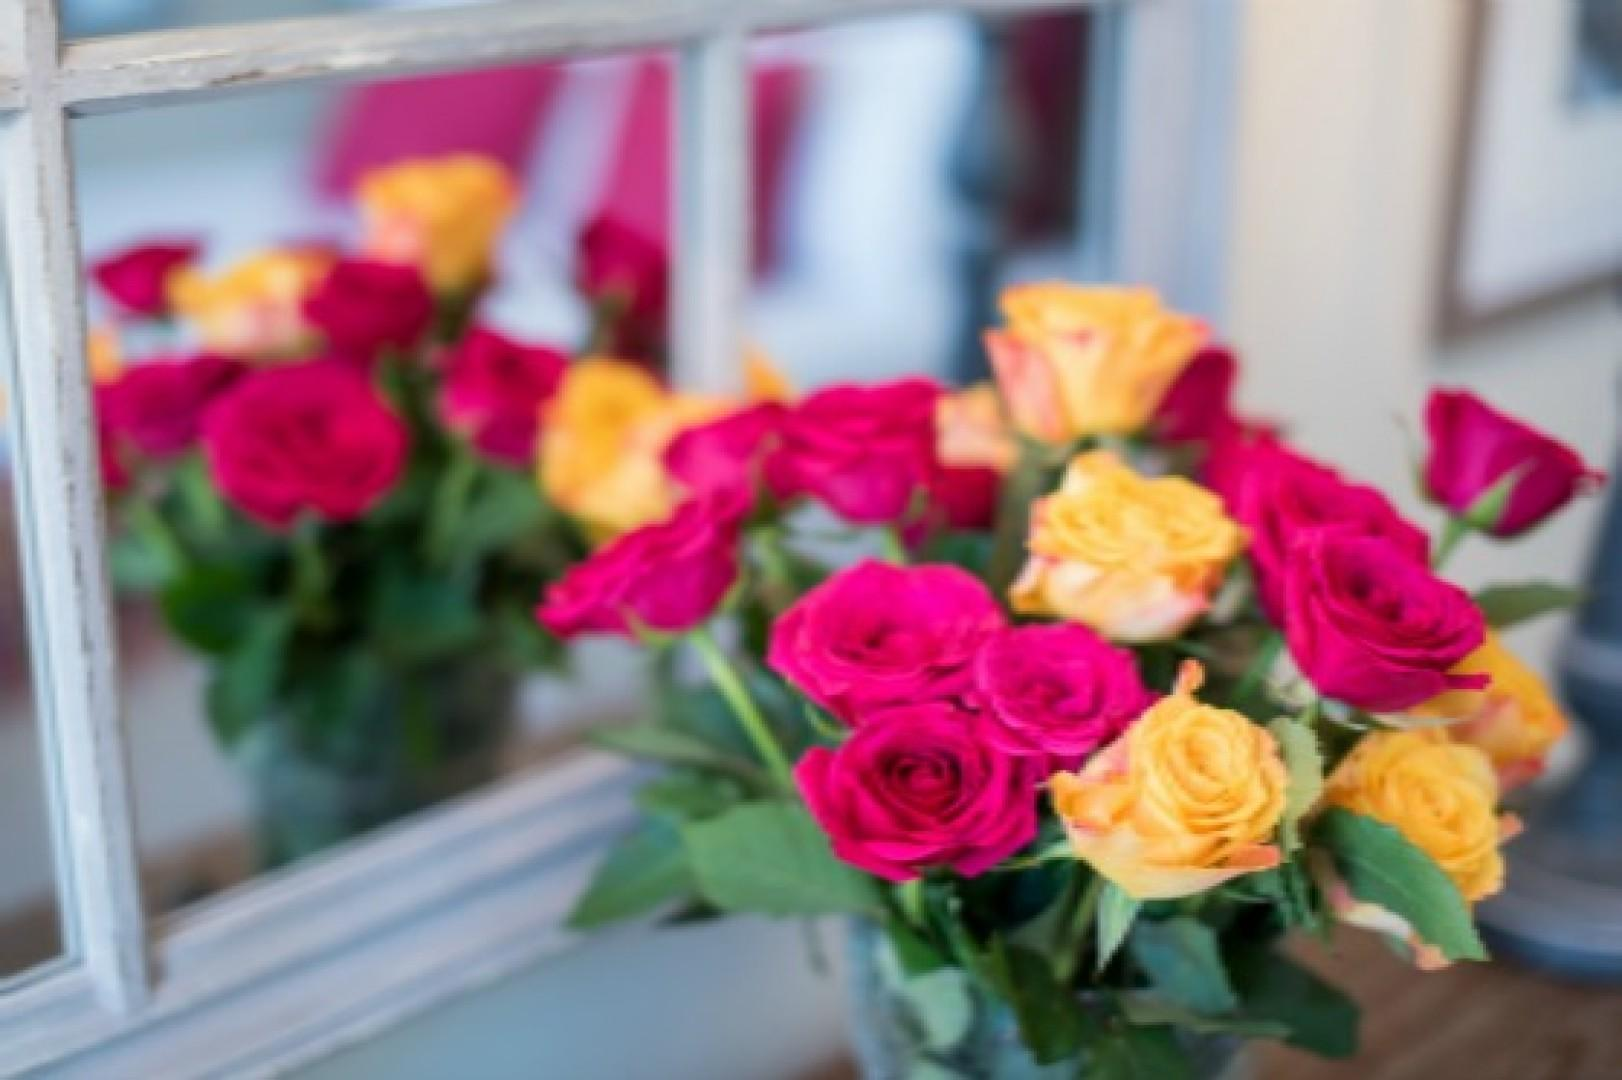 Pick up a bouquet of flowers from shops on Rue Cler.